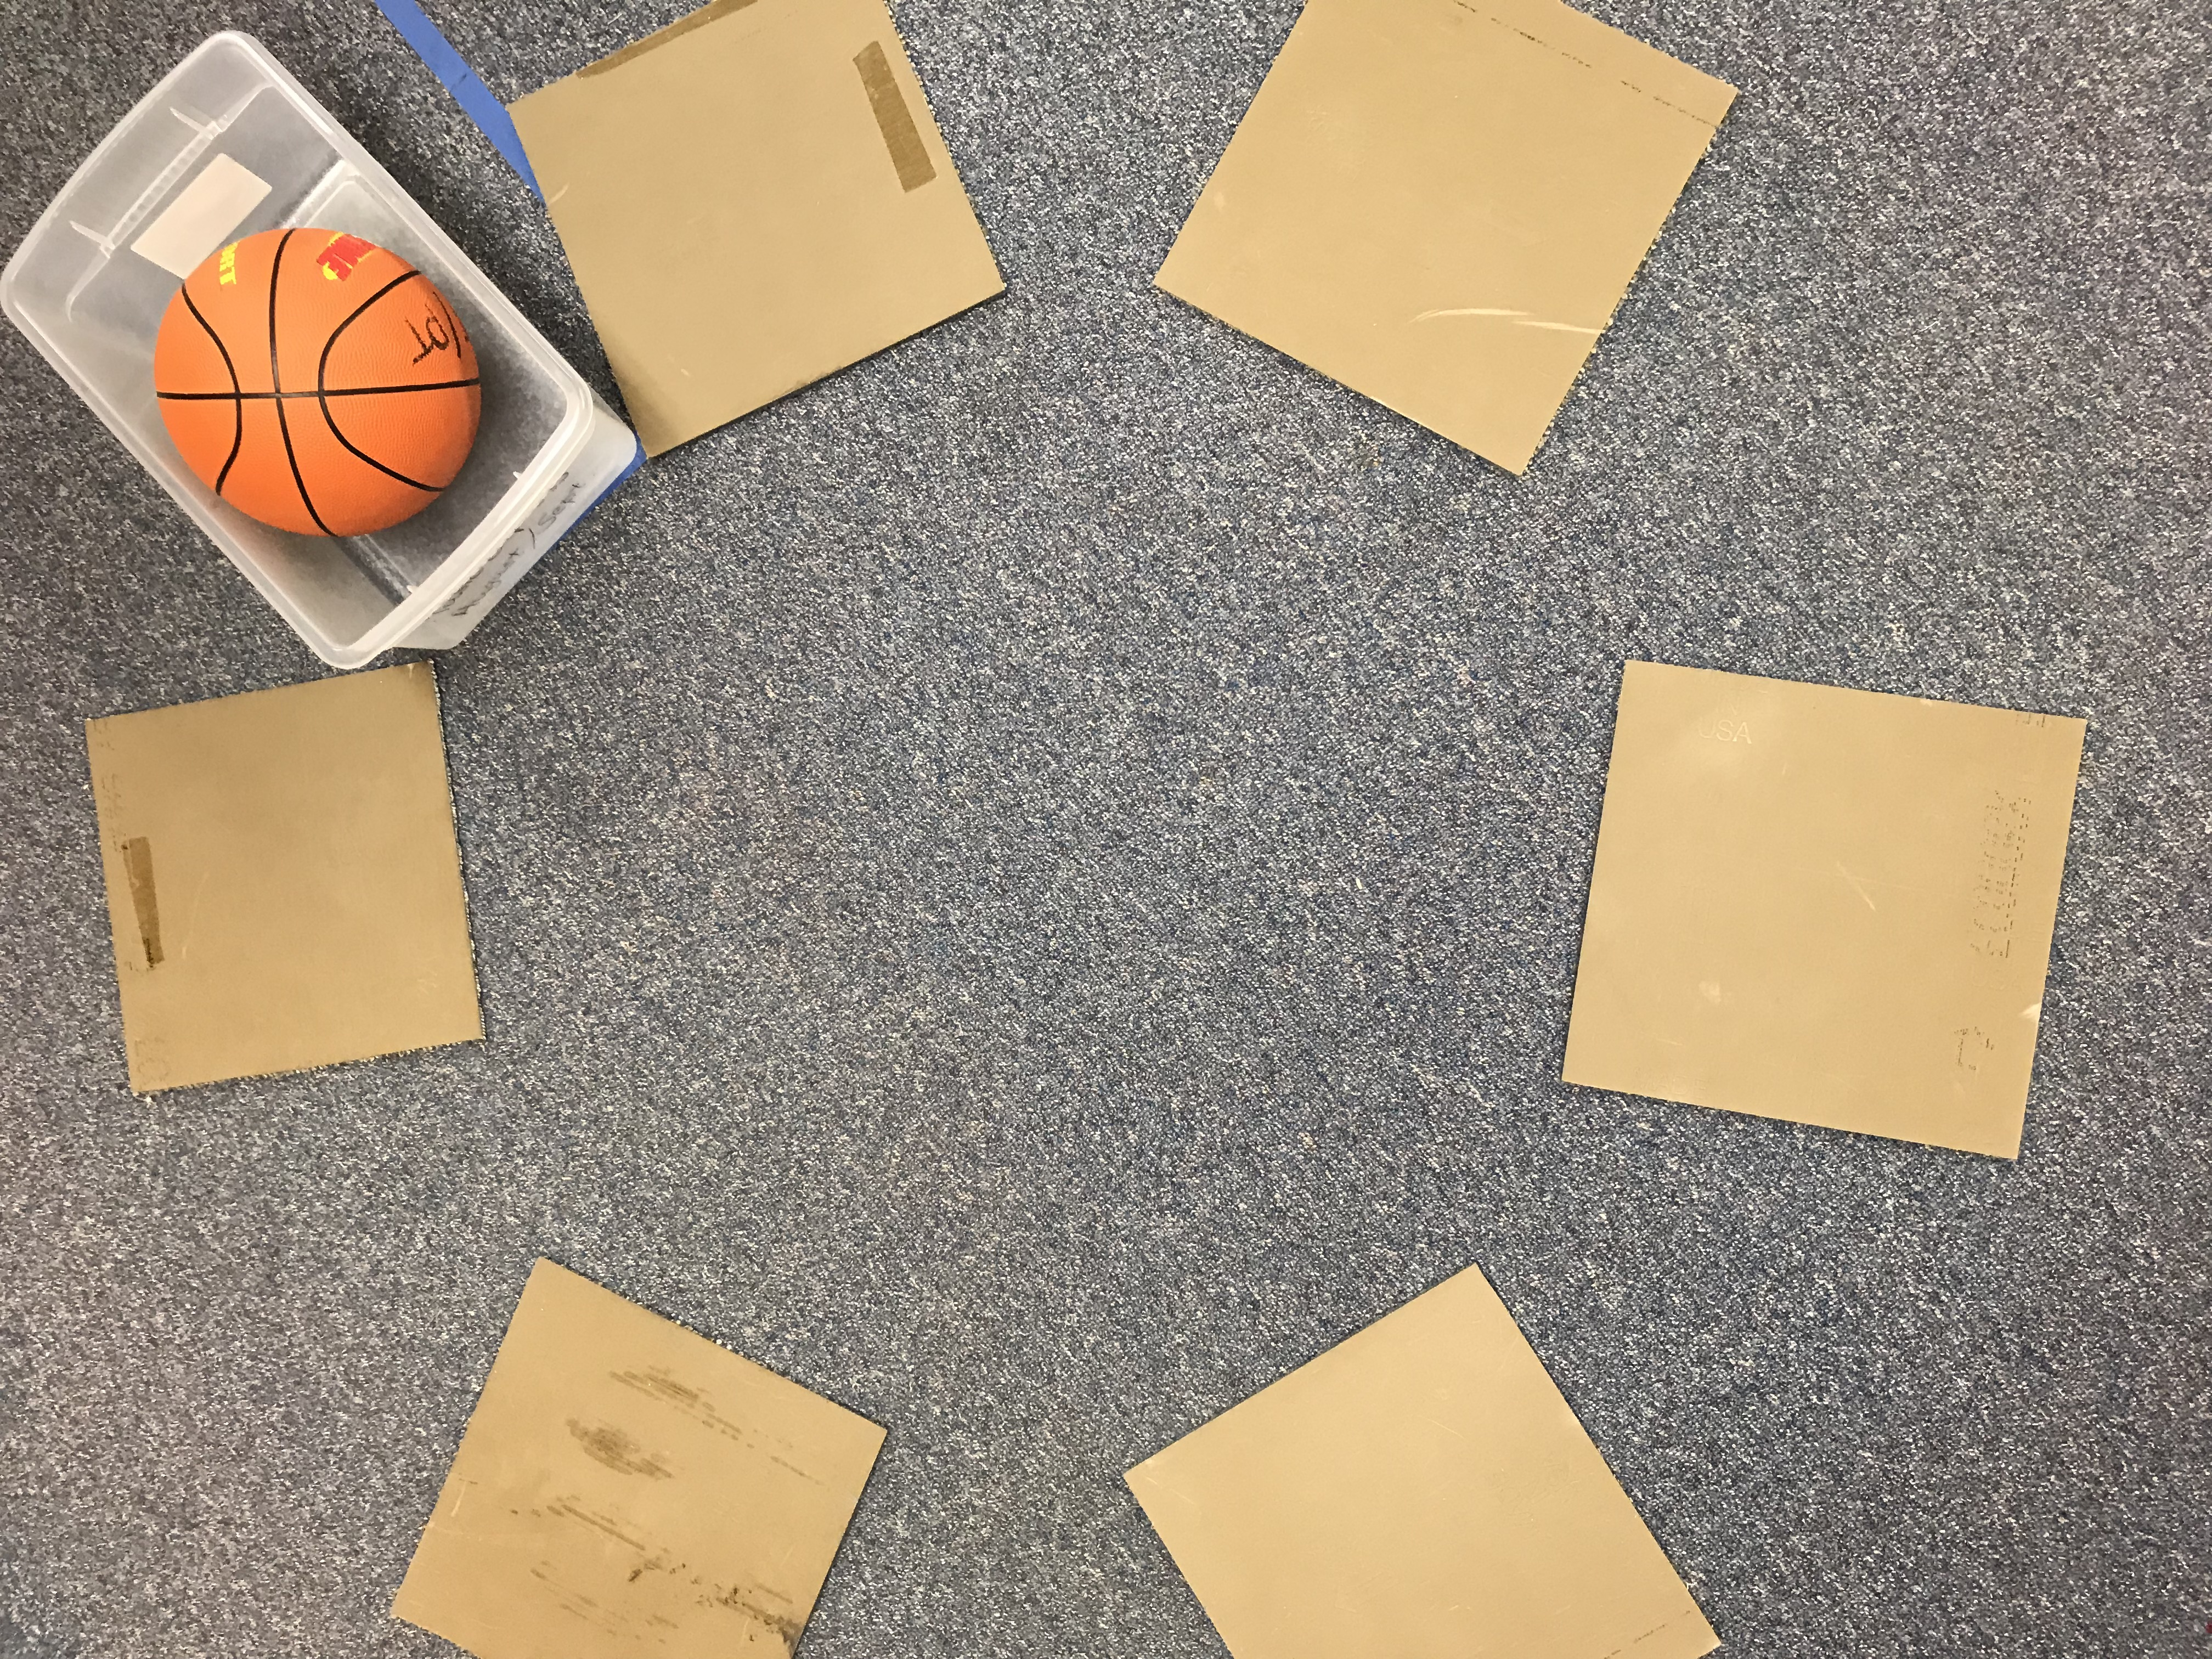 Cardboard squares and a basketball